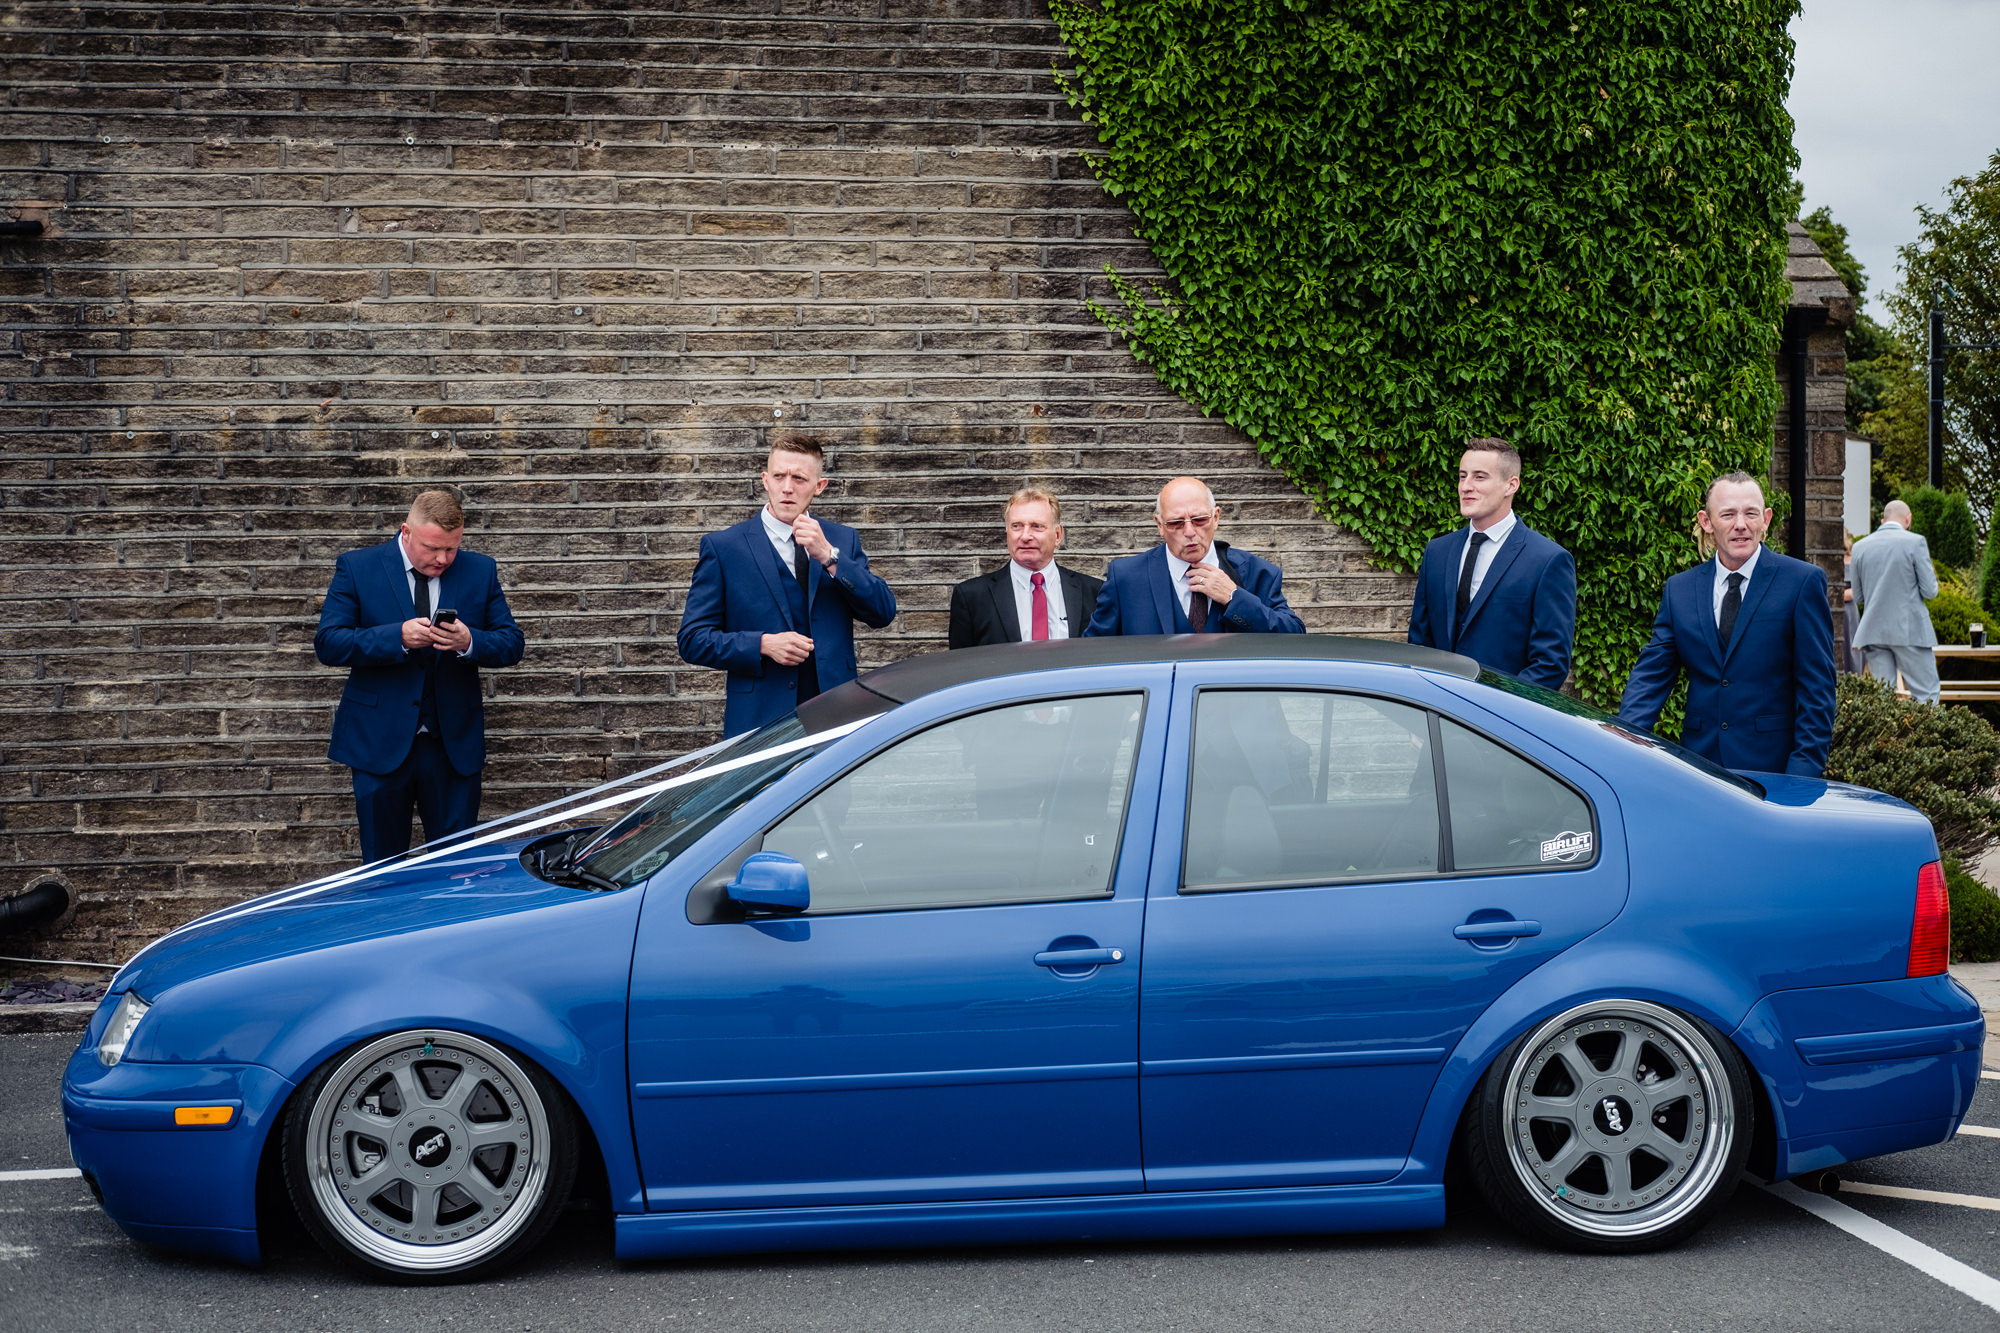 groom and groomsmen in blue suits standing behind a blue v w show car. huntsman inn wedding photography by emma and rich.